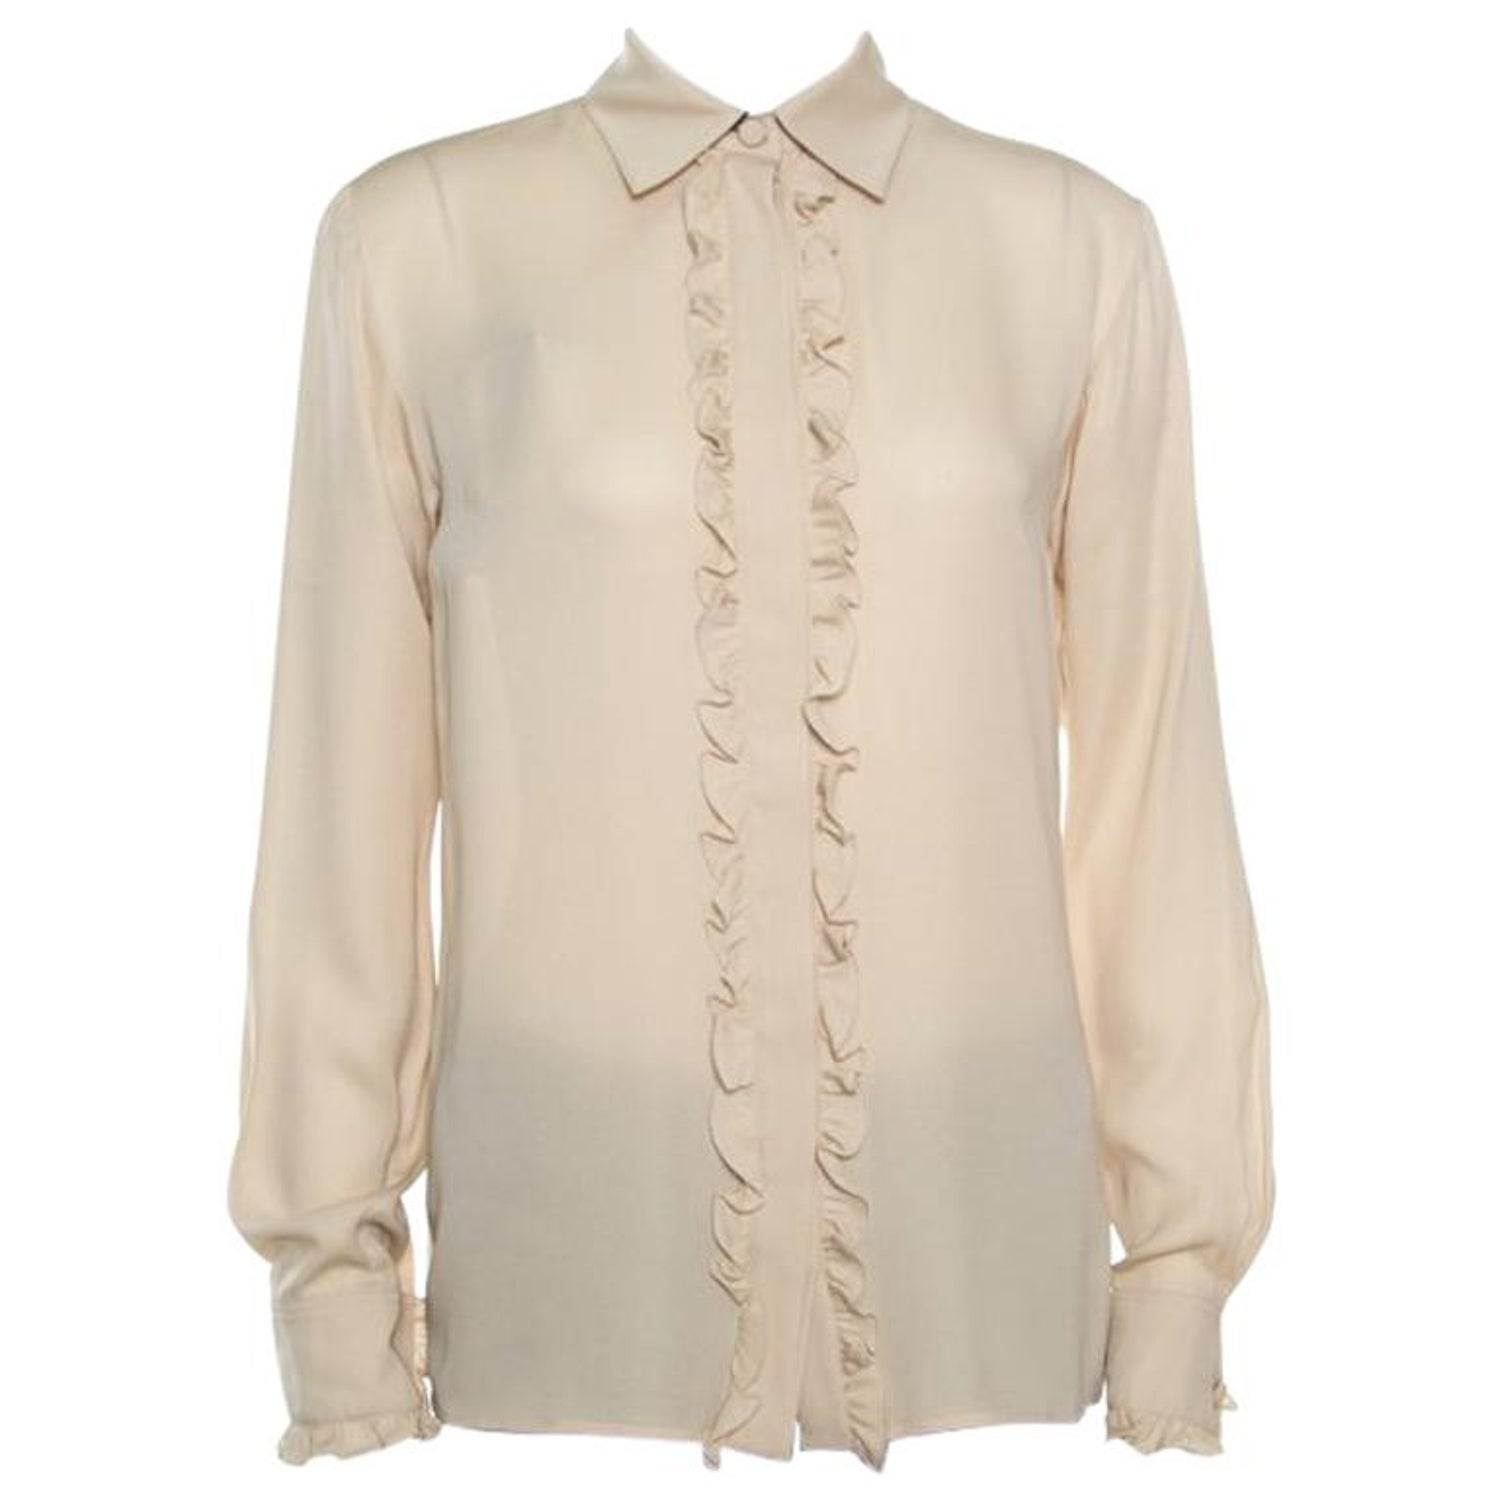 a80393505 Gucci Beige Silk Ruffle Placket and Cuff Detail Long Sleeve Blouse S For  Sale at 1stdibs